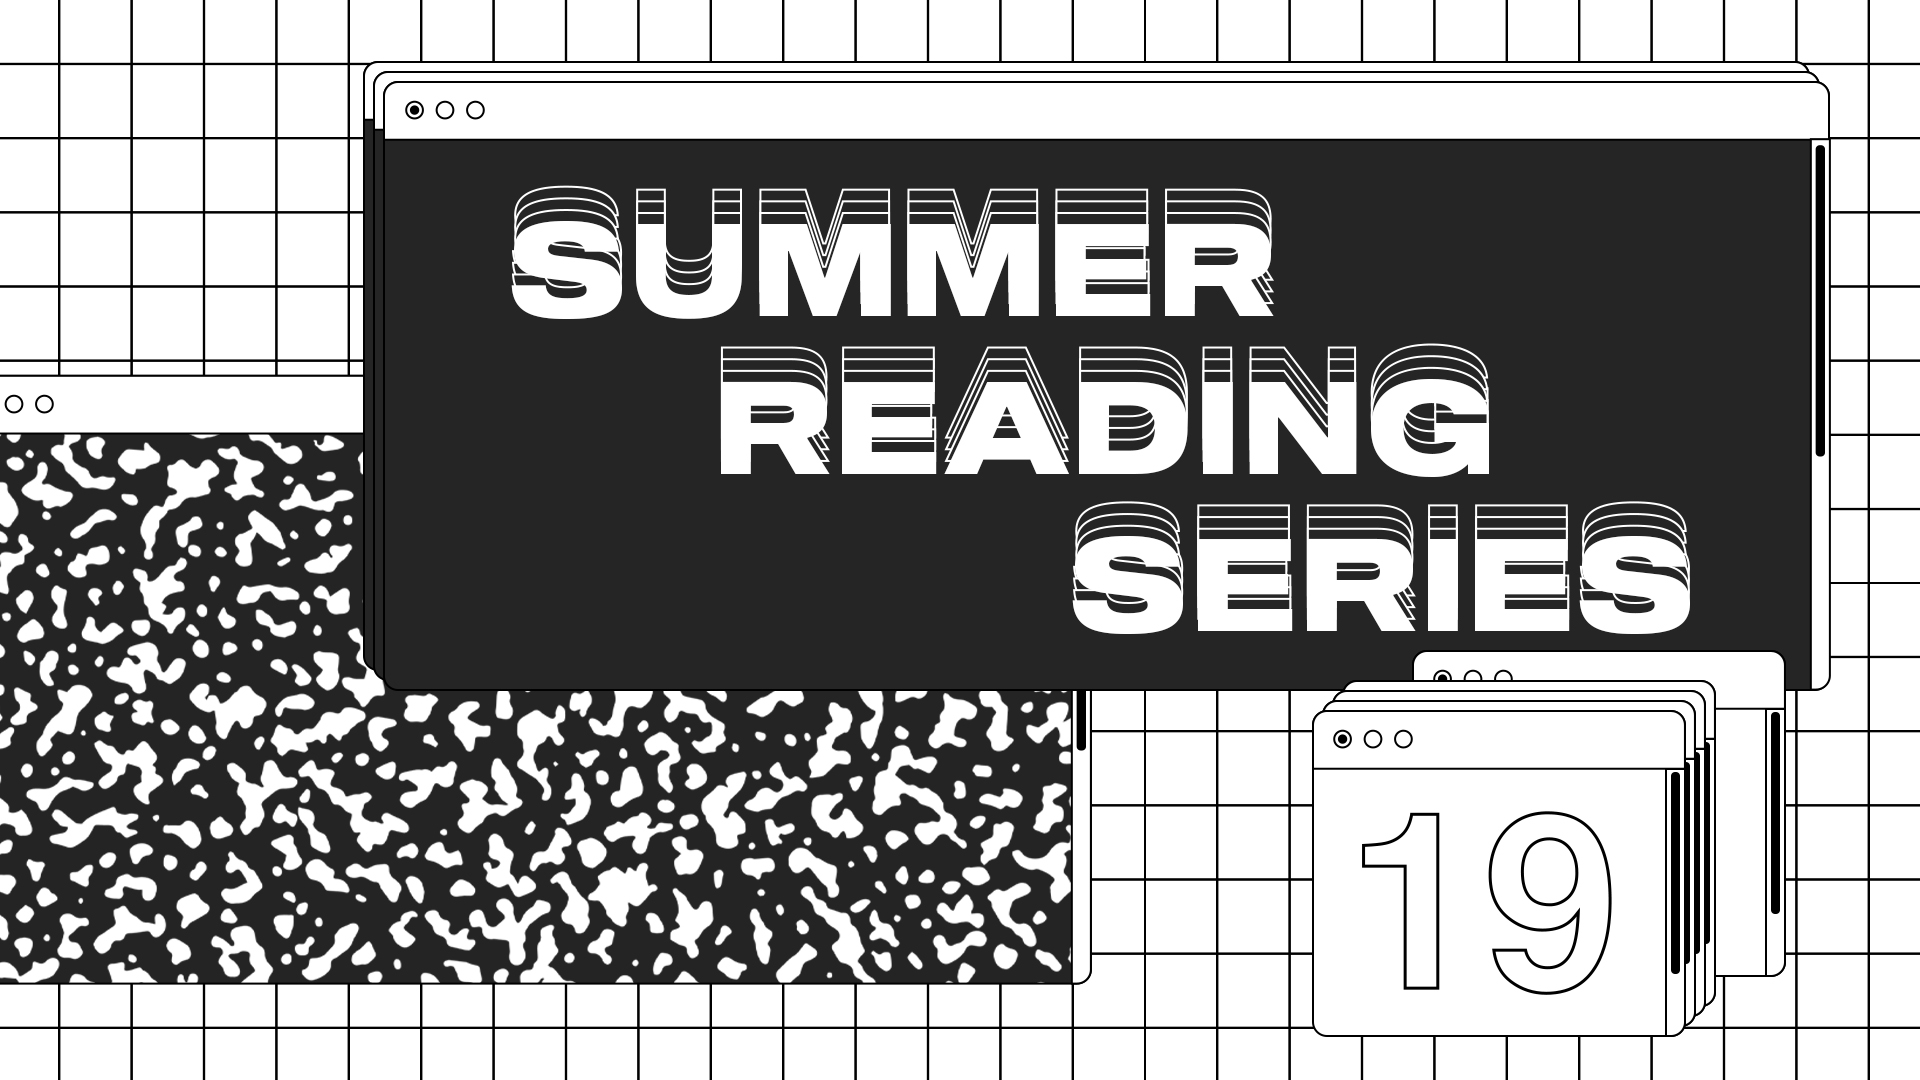 06_Summer Reading Series 2.jpg